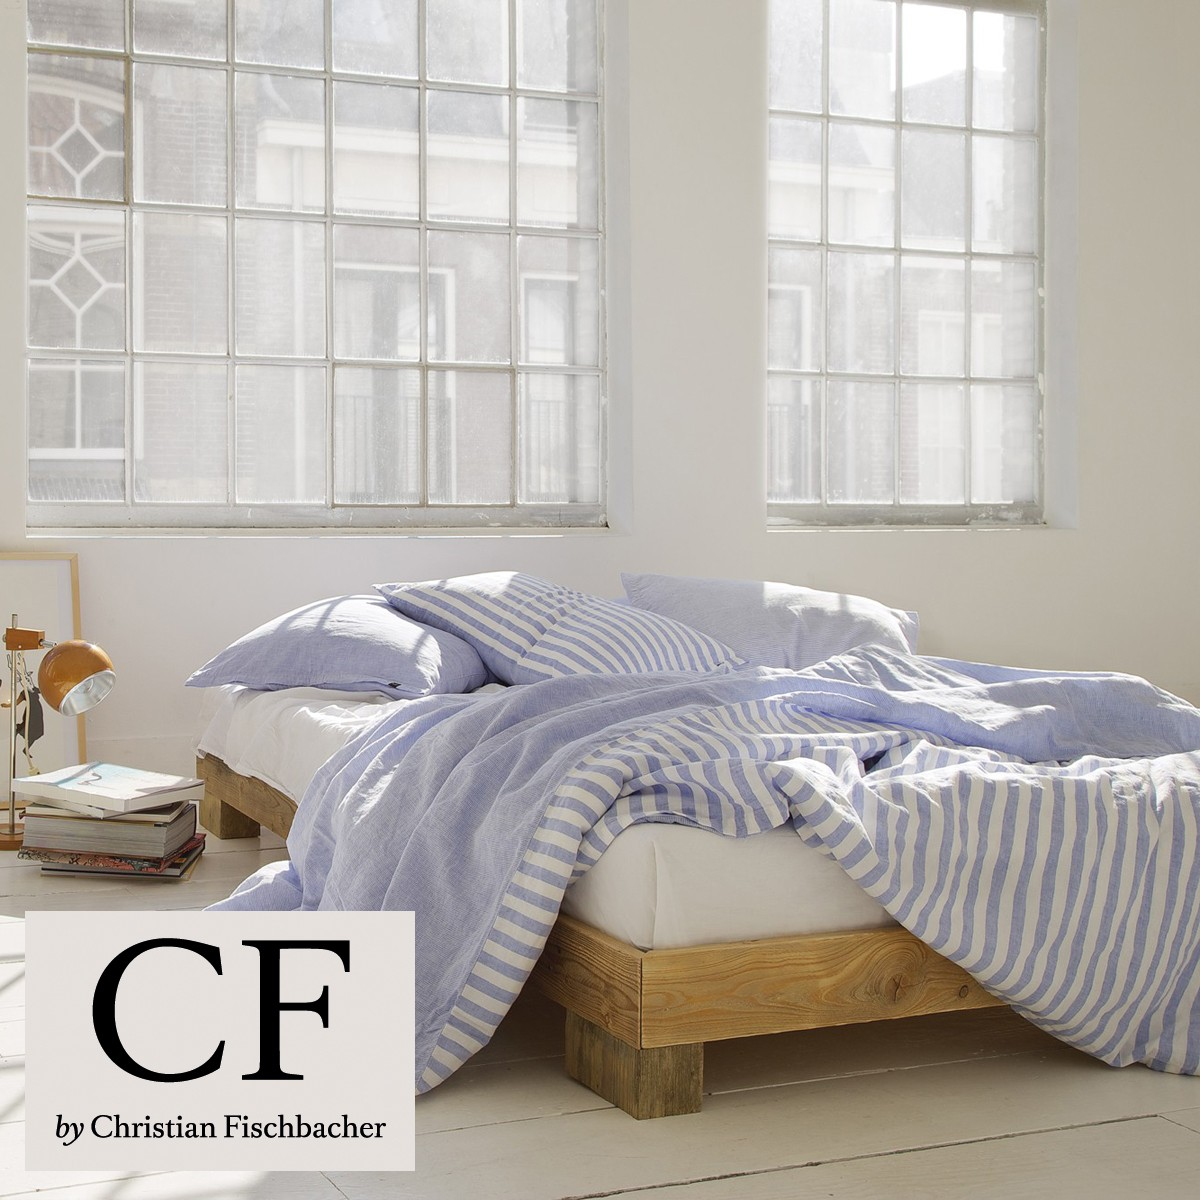 cf wendebettw sche summertime morning sky. Black Bedroom Furniture Sets. Home Design Ideas